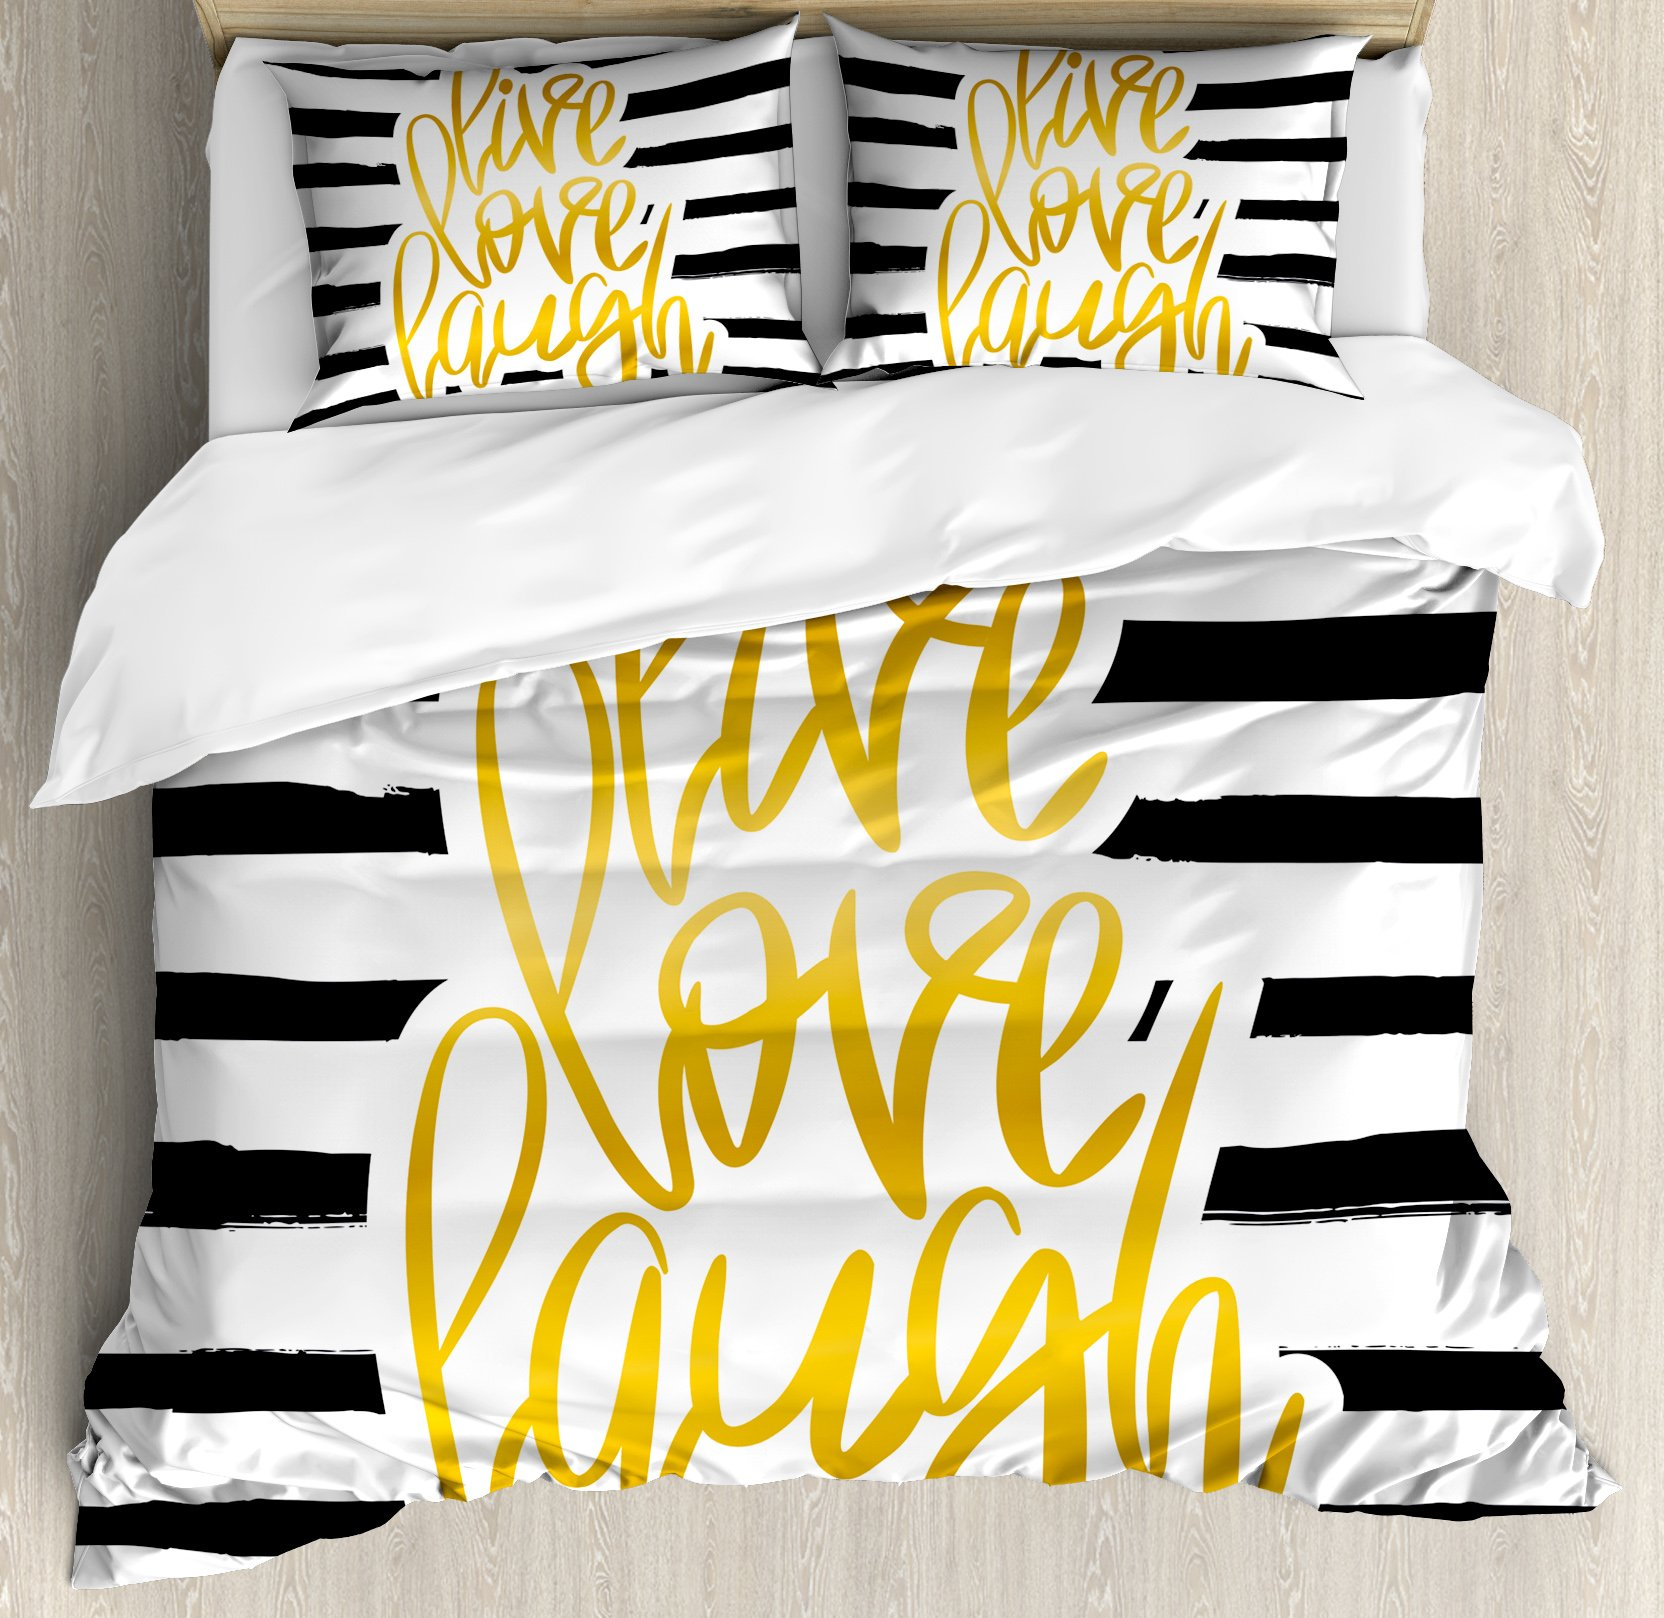 Live Laugh Love Duvet Cover Set King Size by Ambesonne, Romantic Design with Hand Drawn Stripes and Calligraphic Text, Decorative 3 Piece Bedding Set with 2 Pillow Shams, Black White Earth Yellow